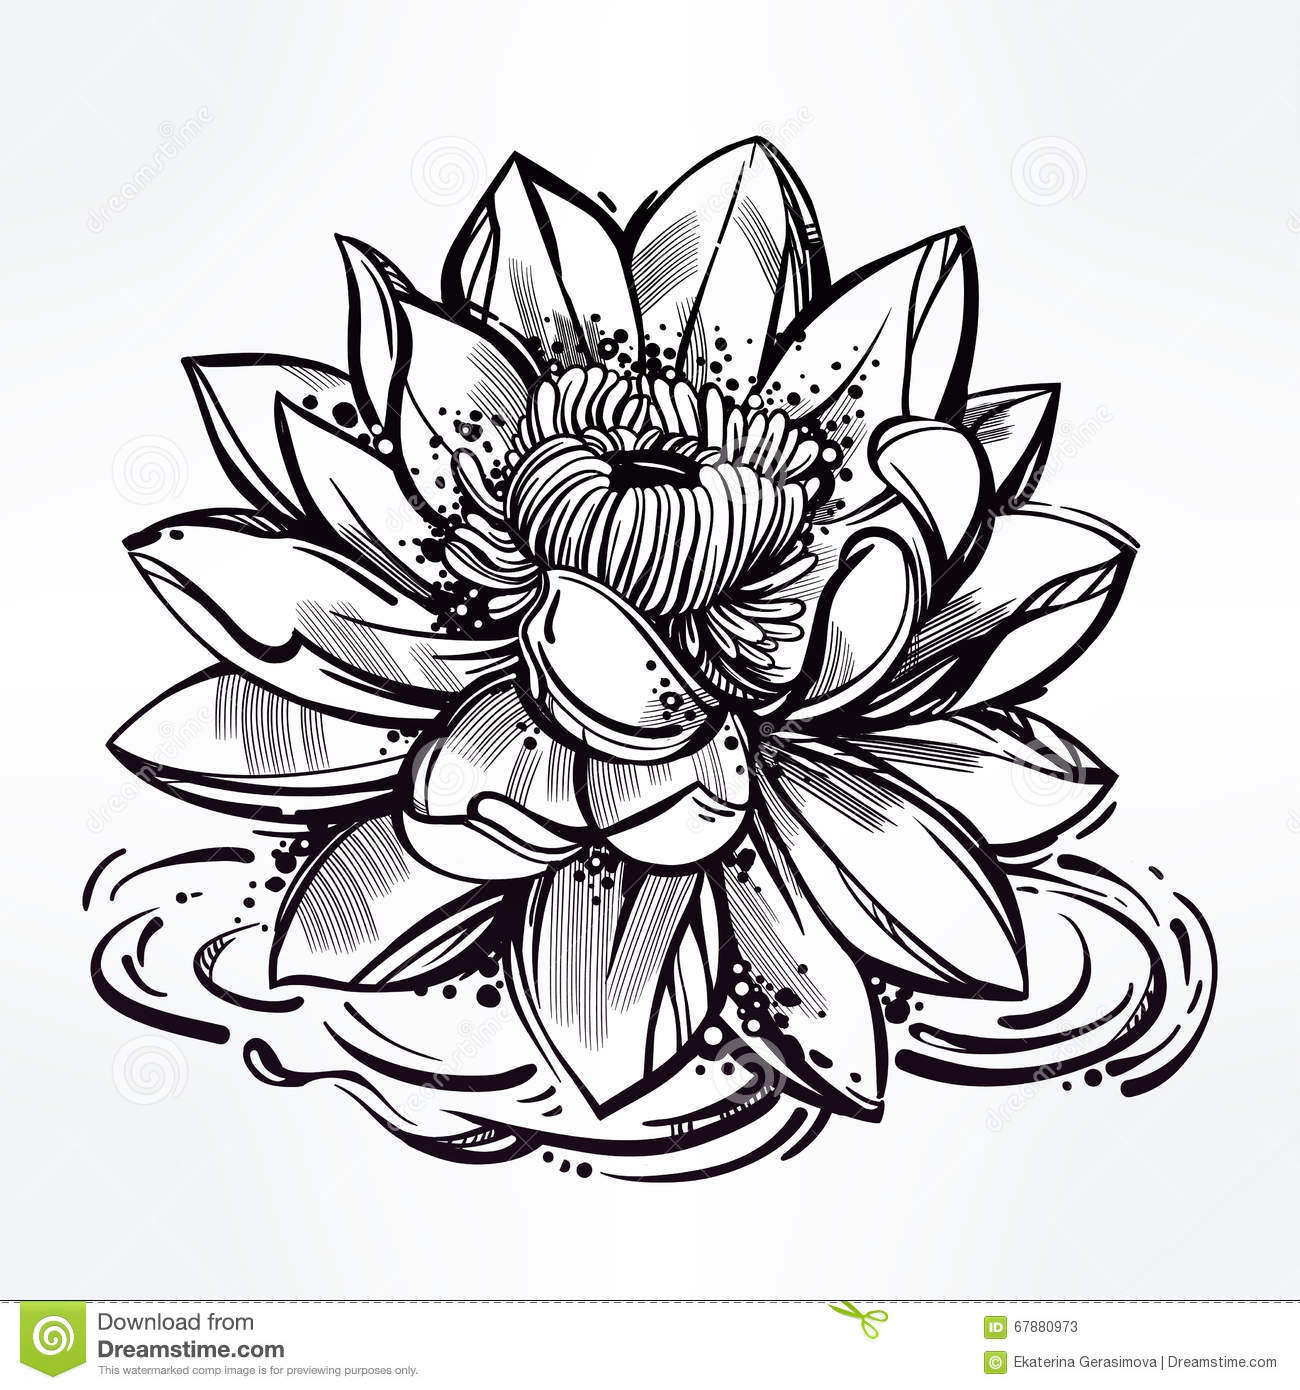 Line Art Media Design : Sketch of lily lotus flower in linear style stock vector